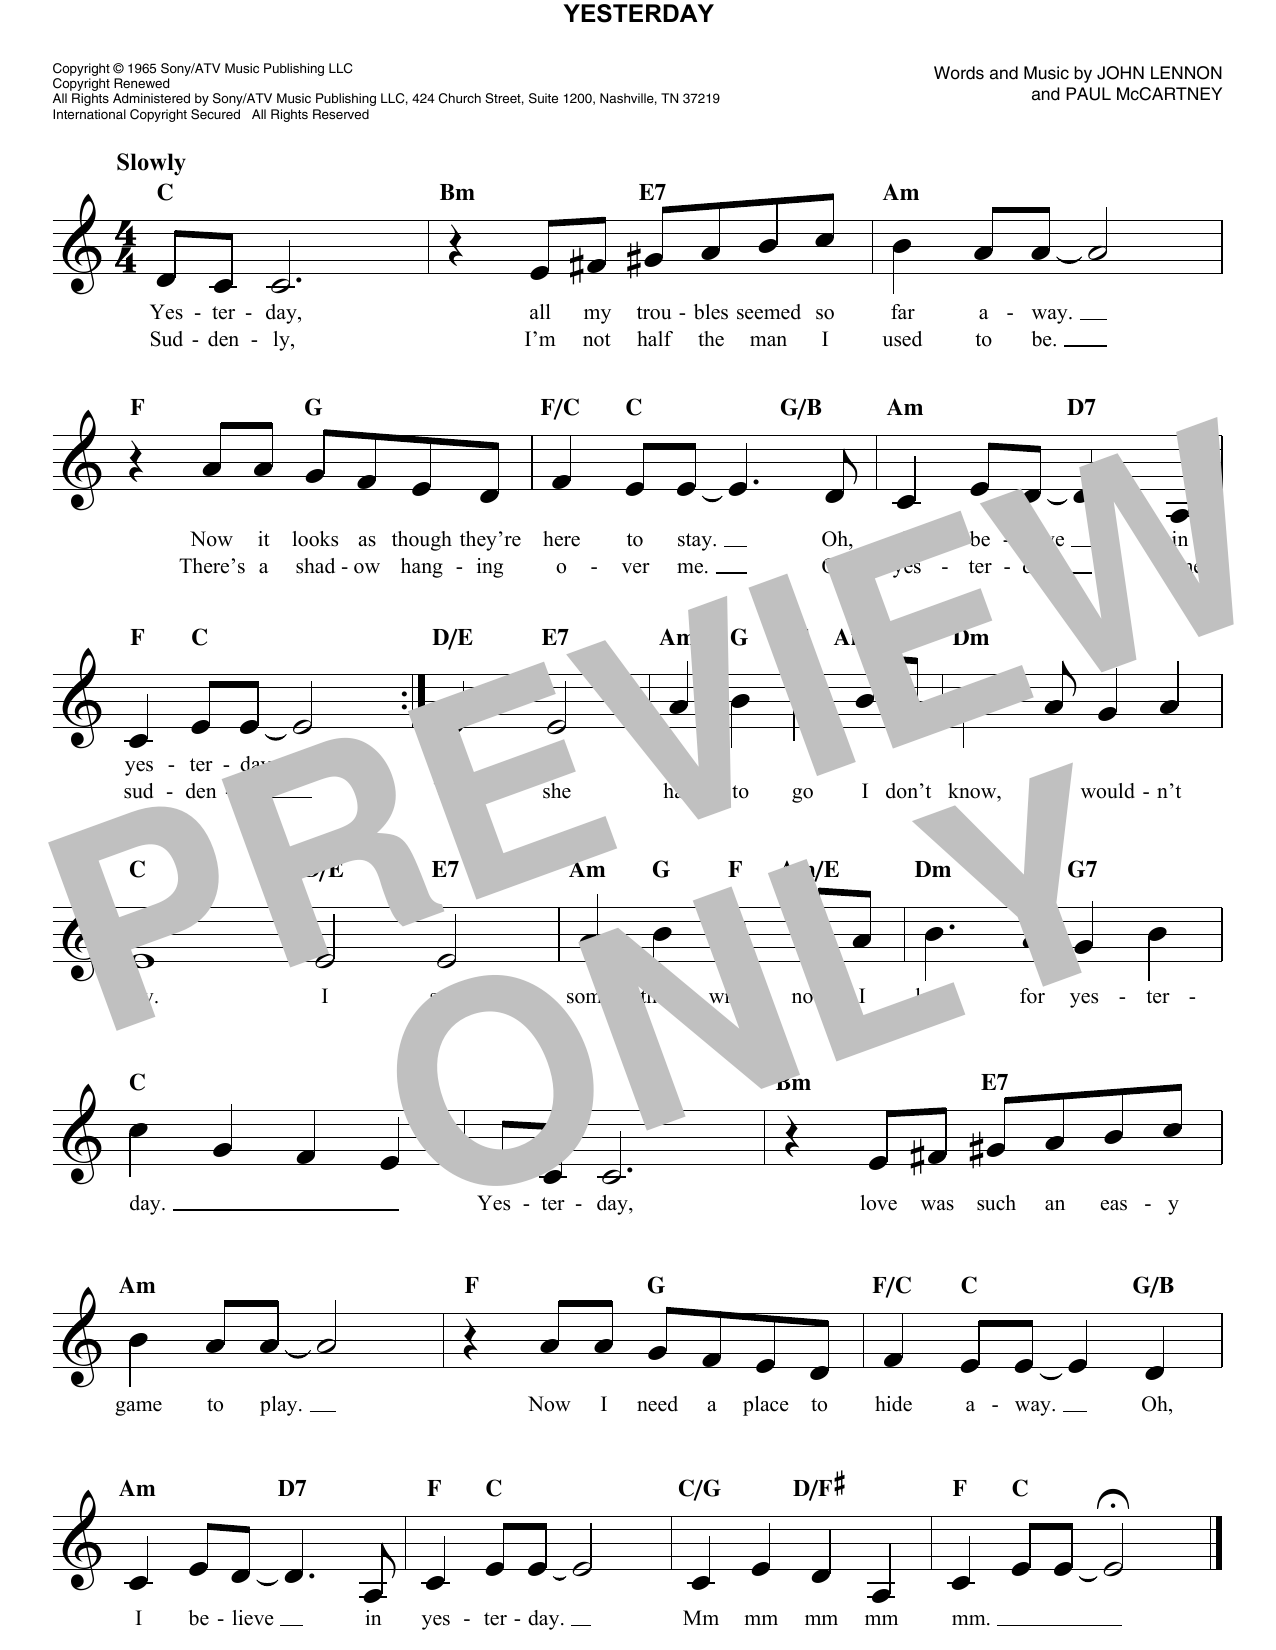 Yesterday chords by the beatles melody line lyrics chords the beatles yesterday melody line lyrics chords hexwebz Images